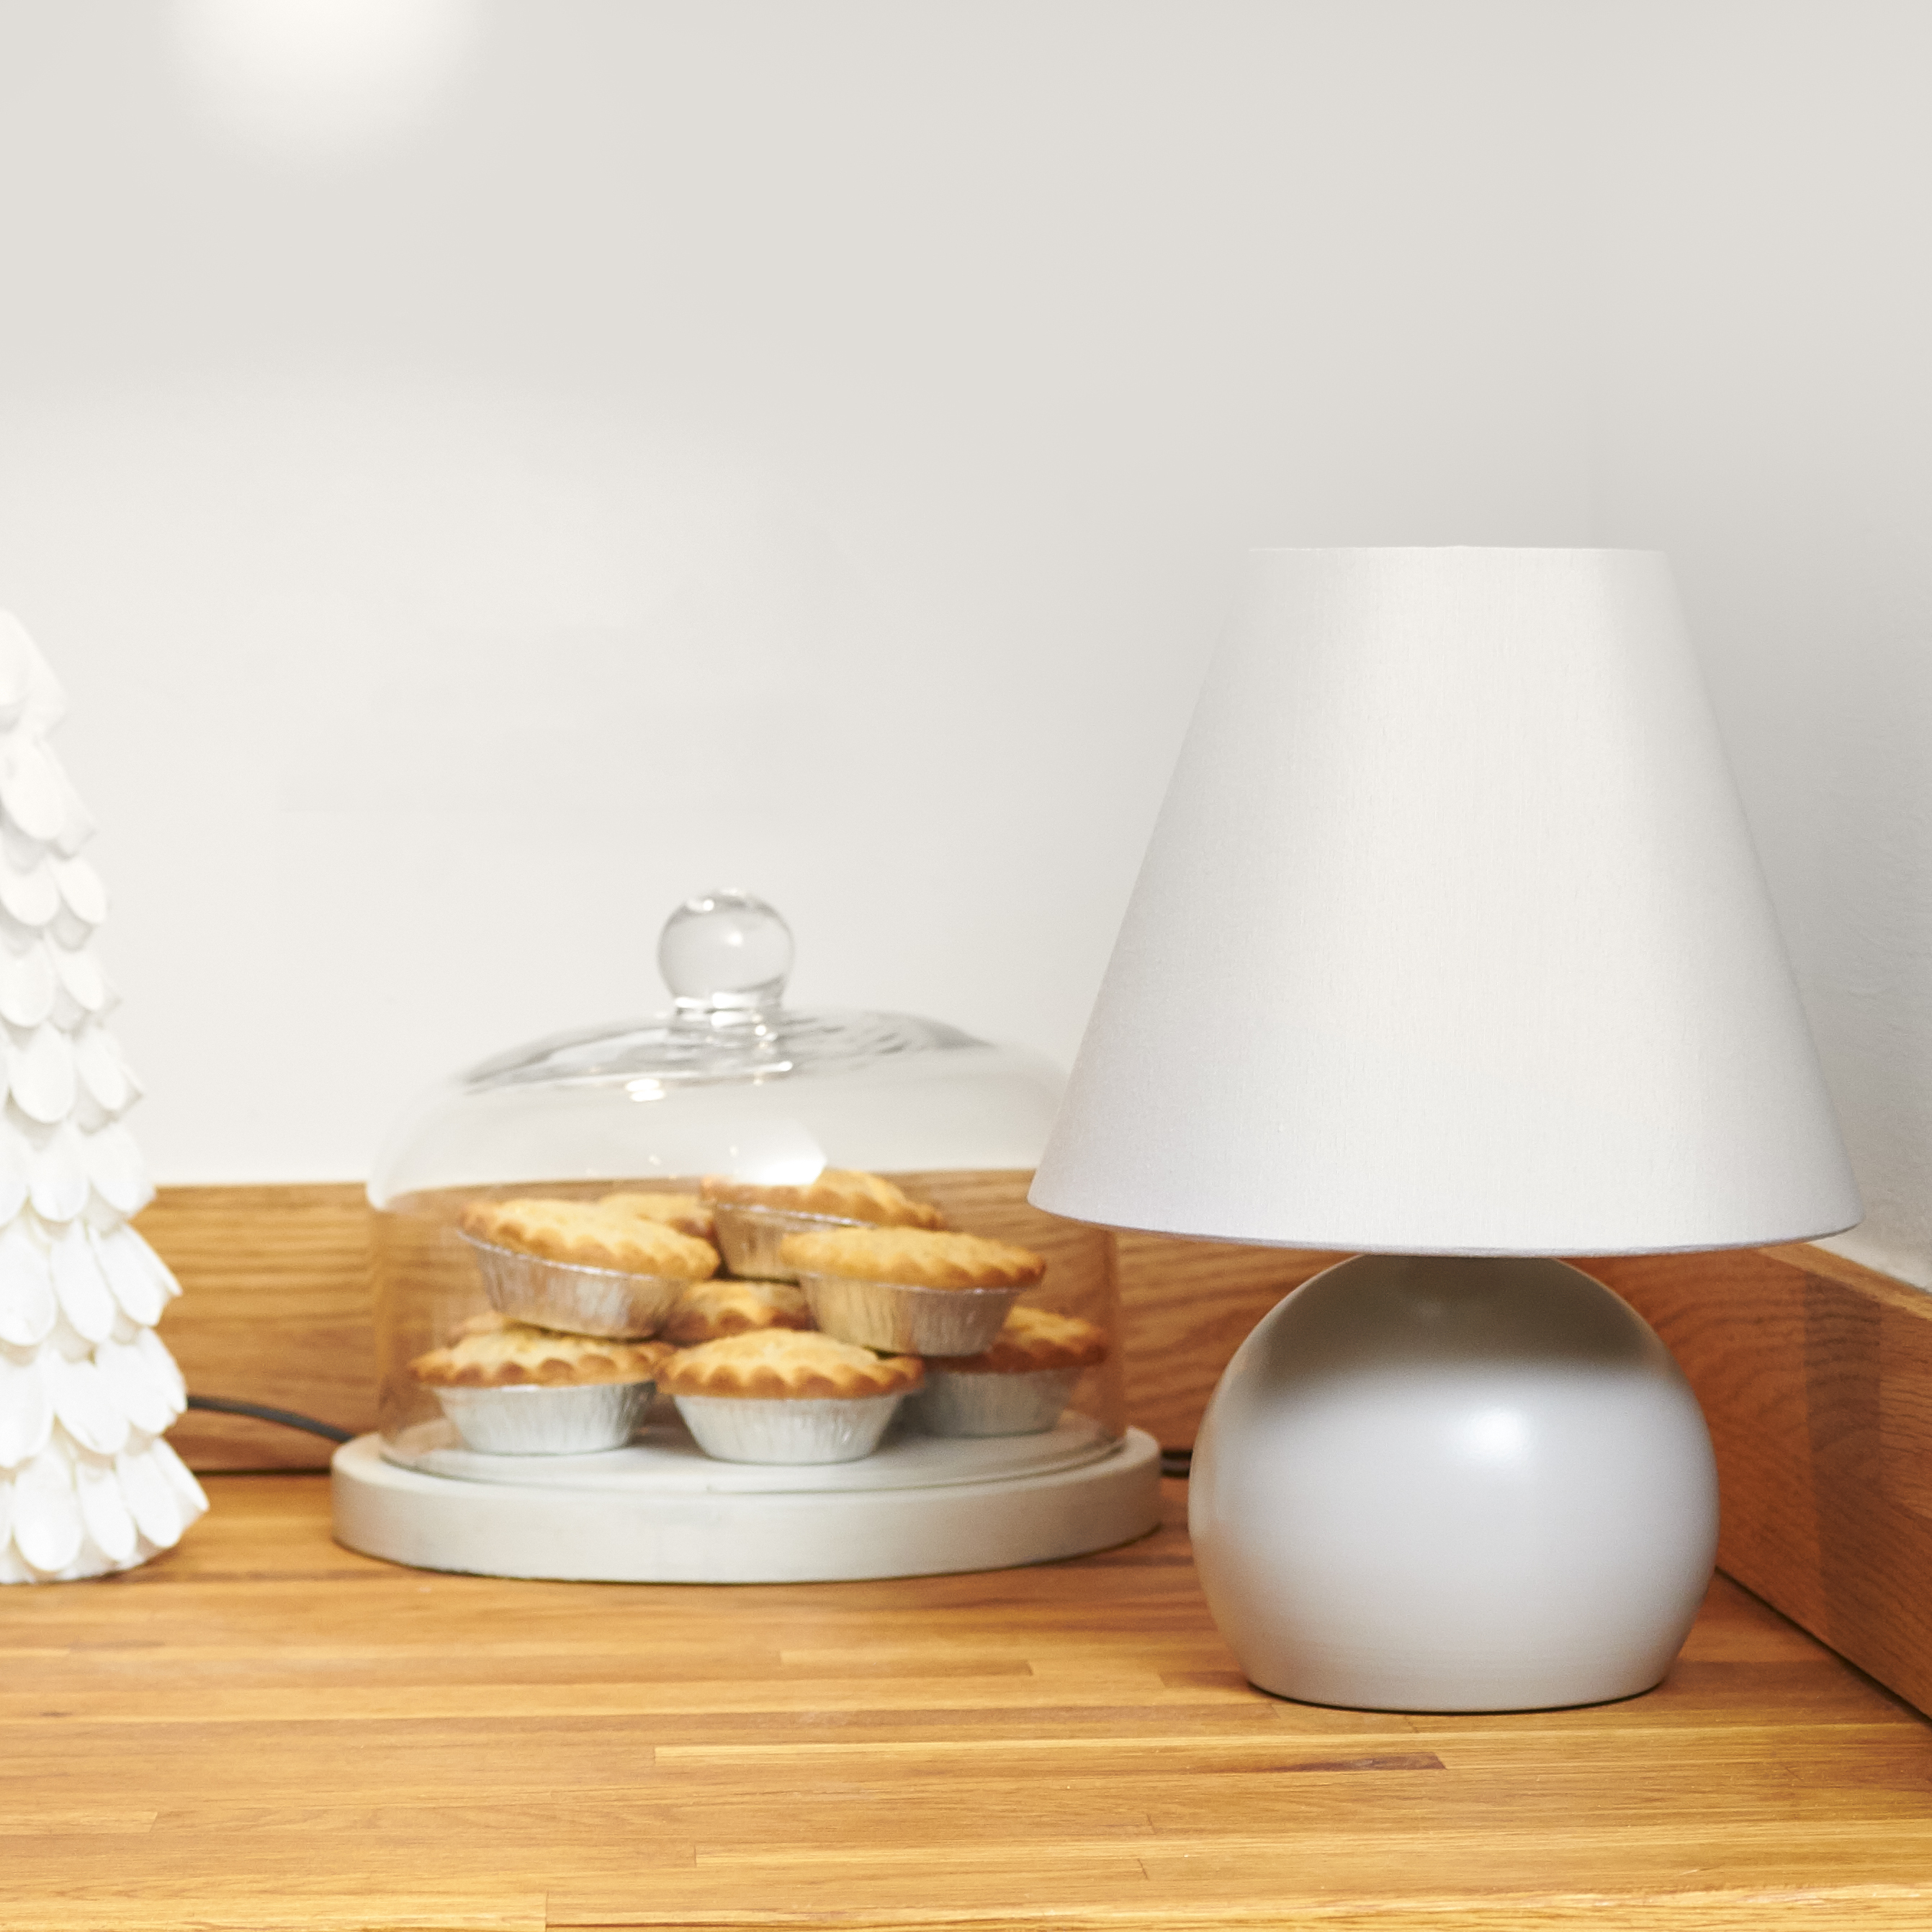 yummy mince pies next to a white ceramic table lamp at xmas